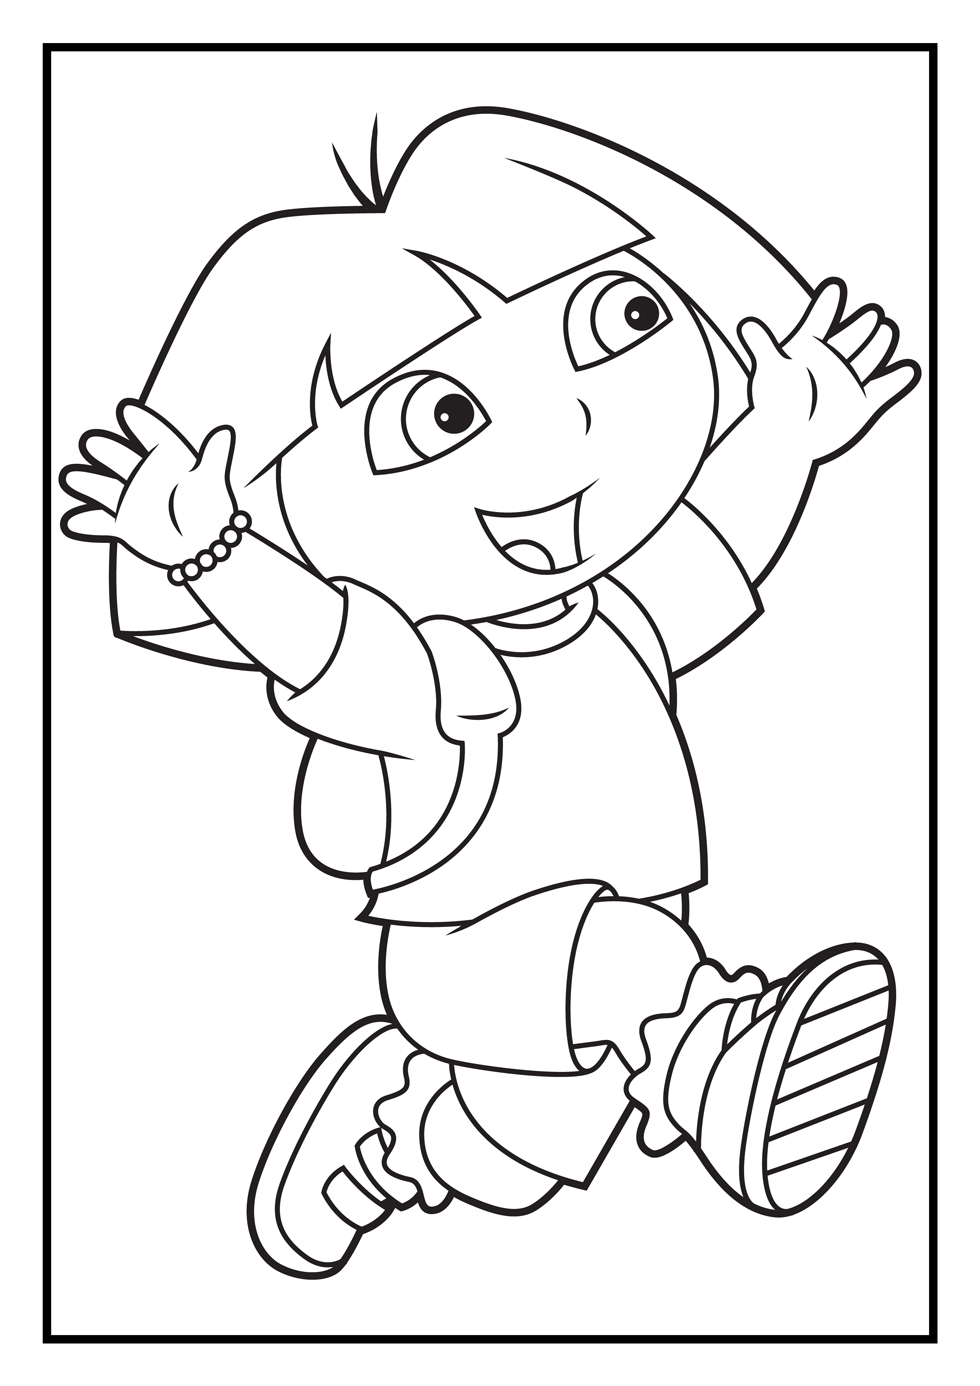 Dora the explorer coloring pages coloring pages for Dora the explorer coloring page